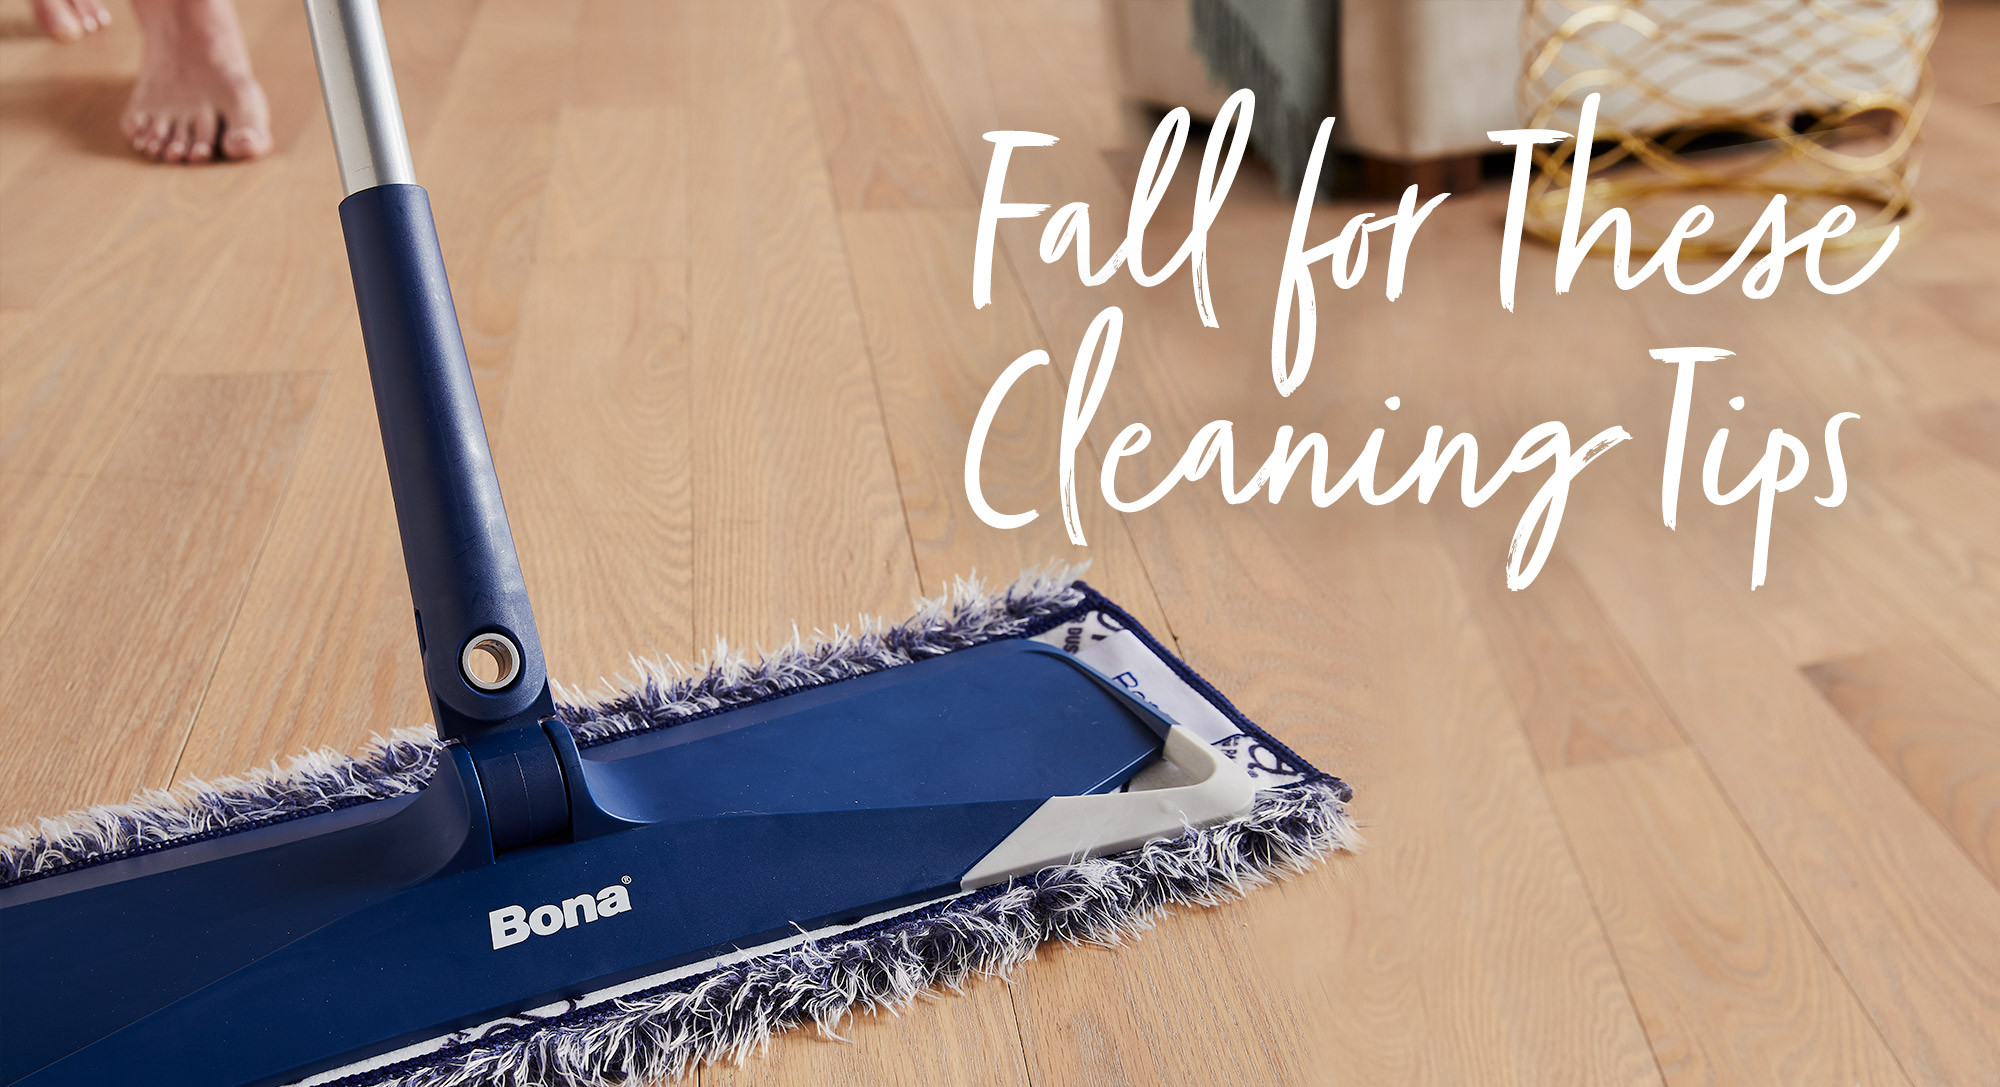 Best Sweeper for Hardwood Floors Of Home Bona Us In Fall Feature2